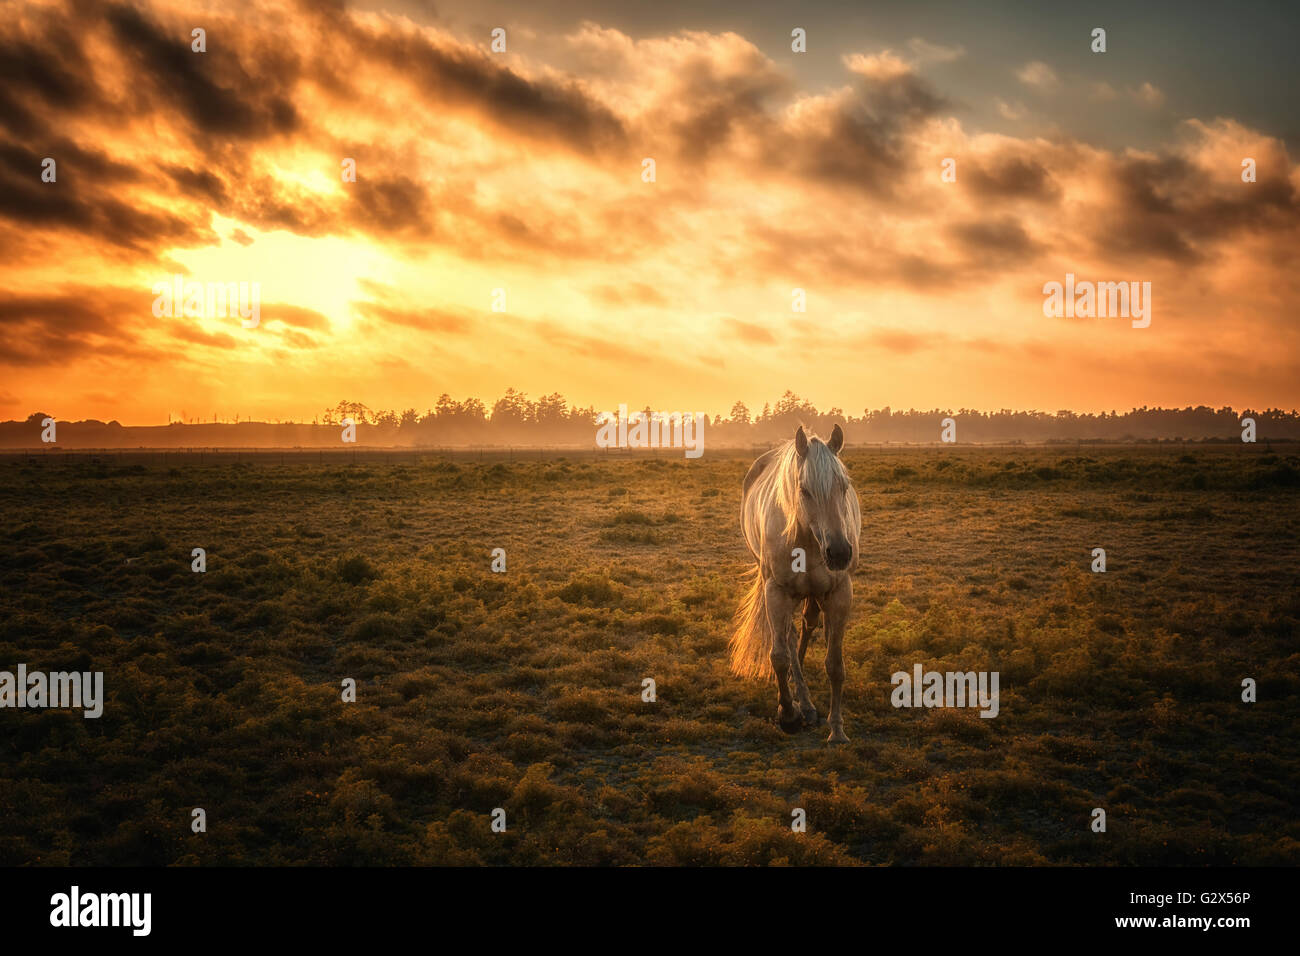 Horse in a Pasture with Orange Sunset - Stock Image